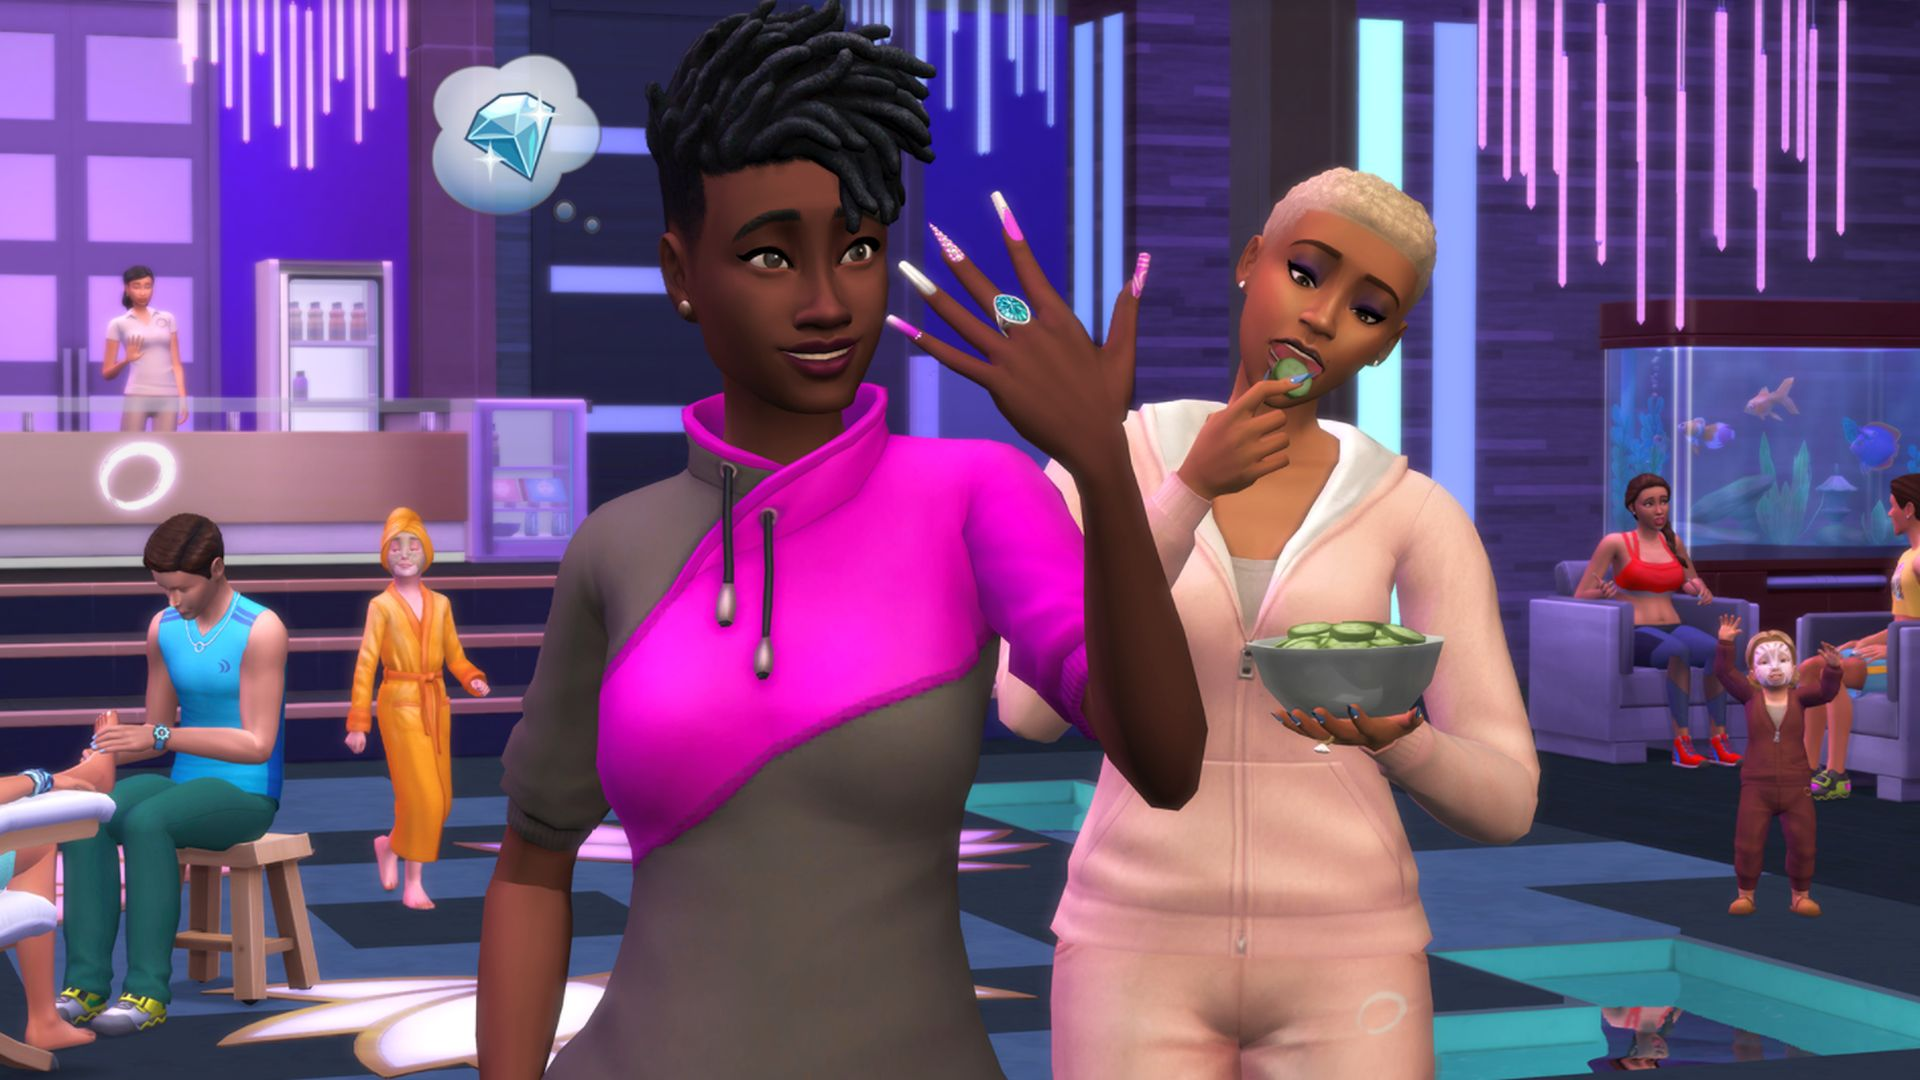 The Sims 4 gets a big, free Spa Day update this week